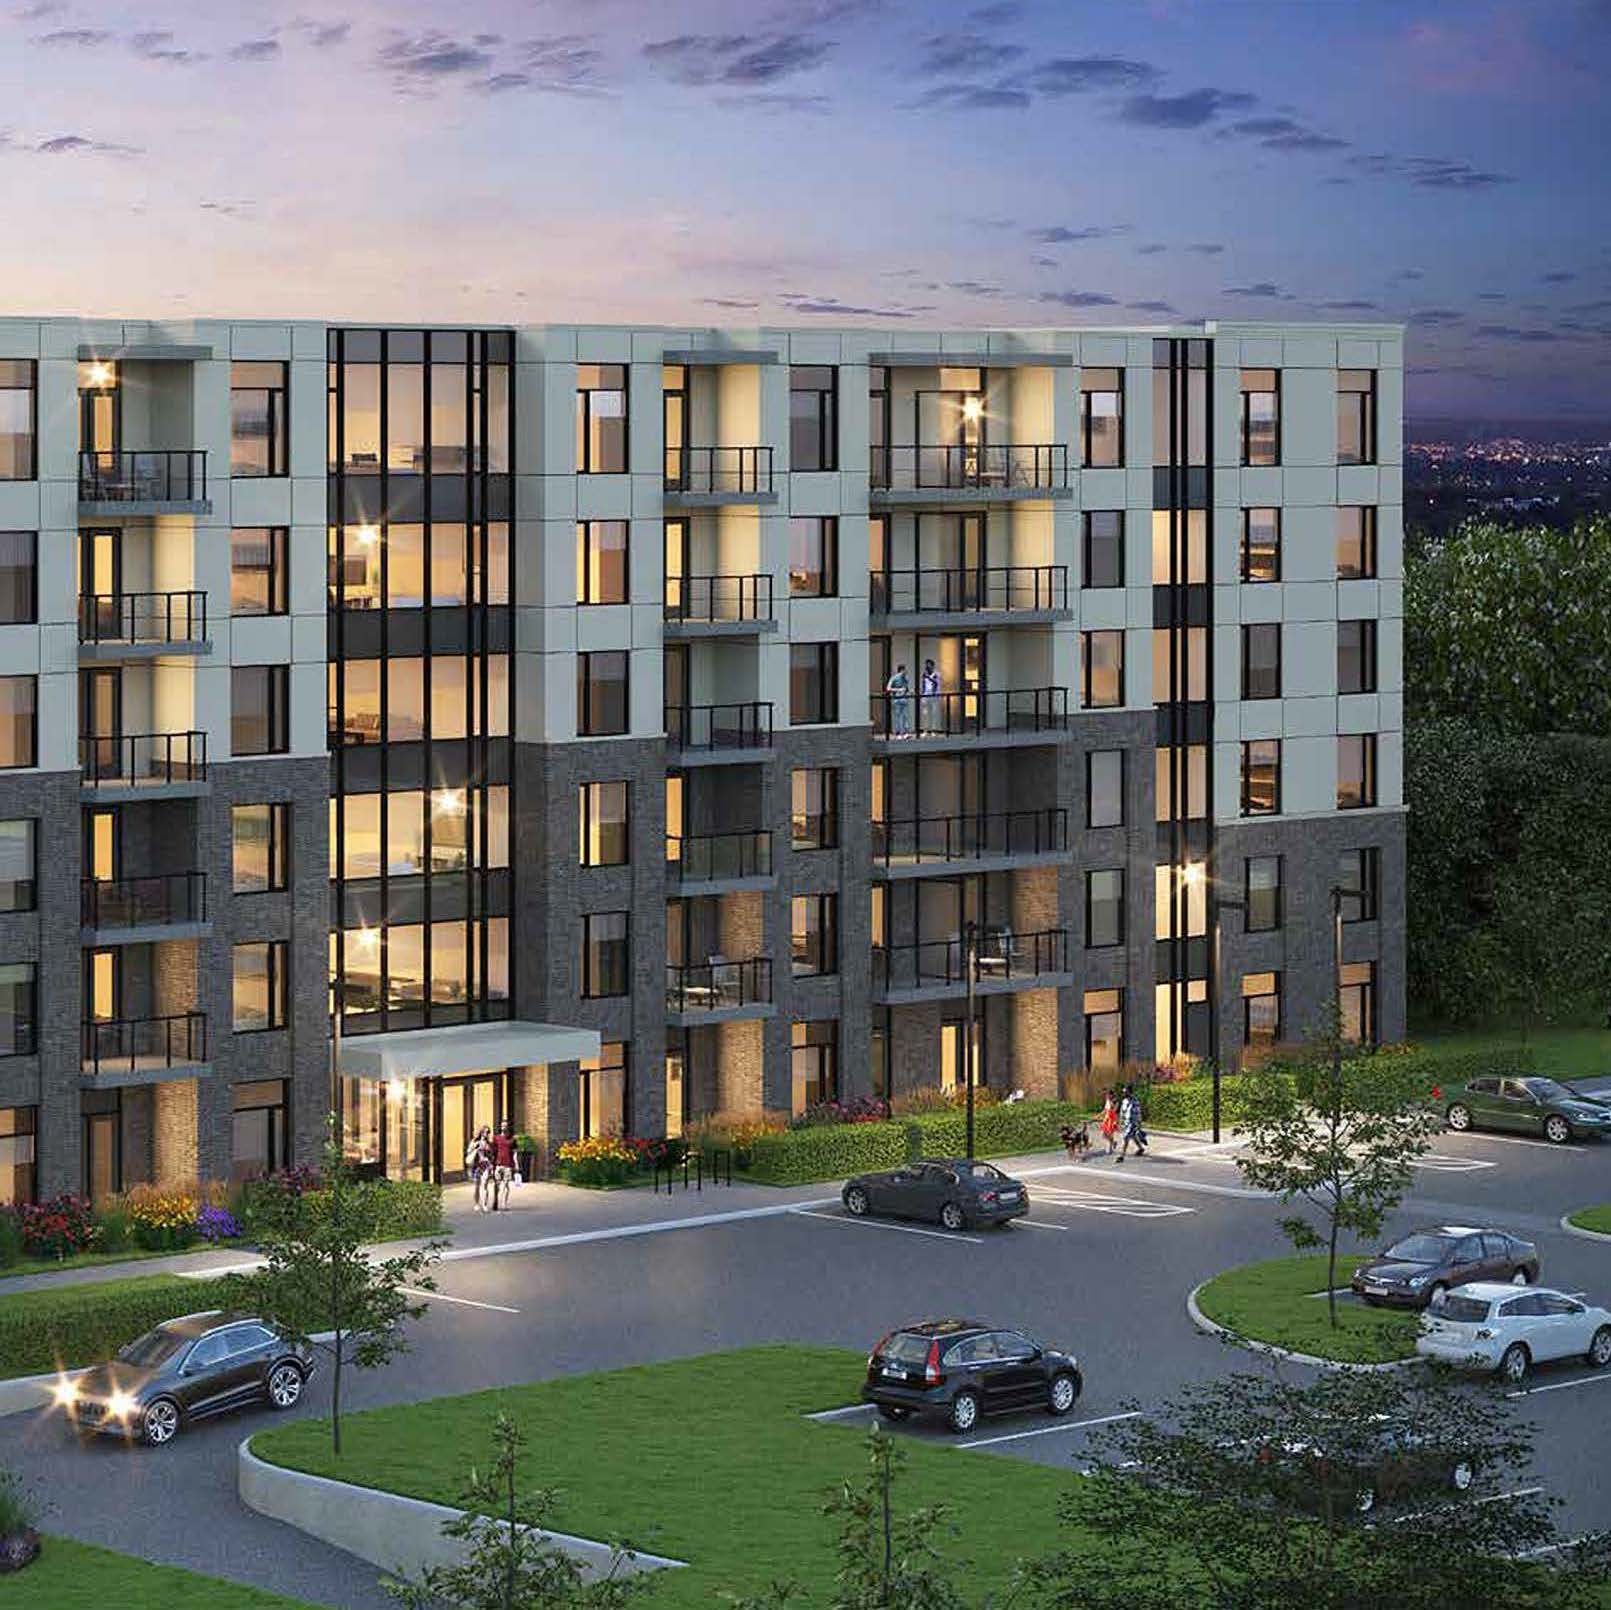 Rendering of Spur Line Common exterior at night and parking lot.